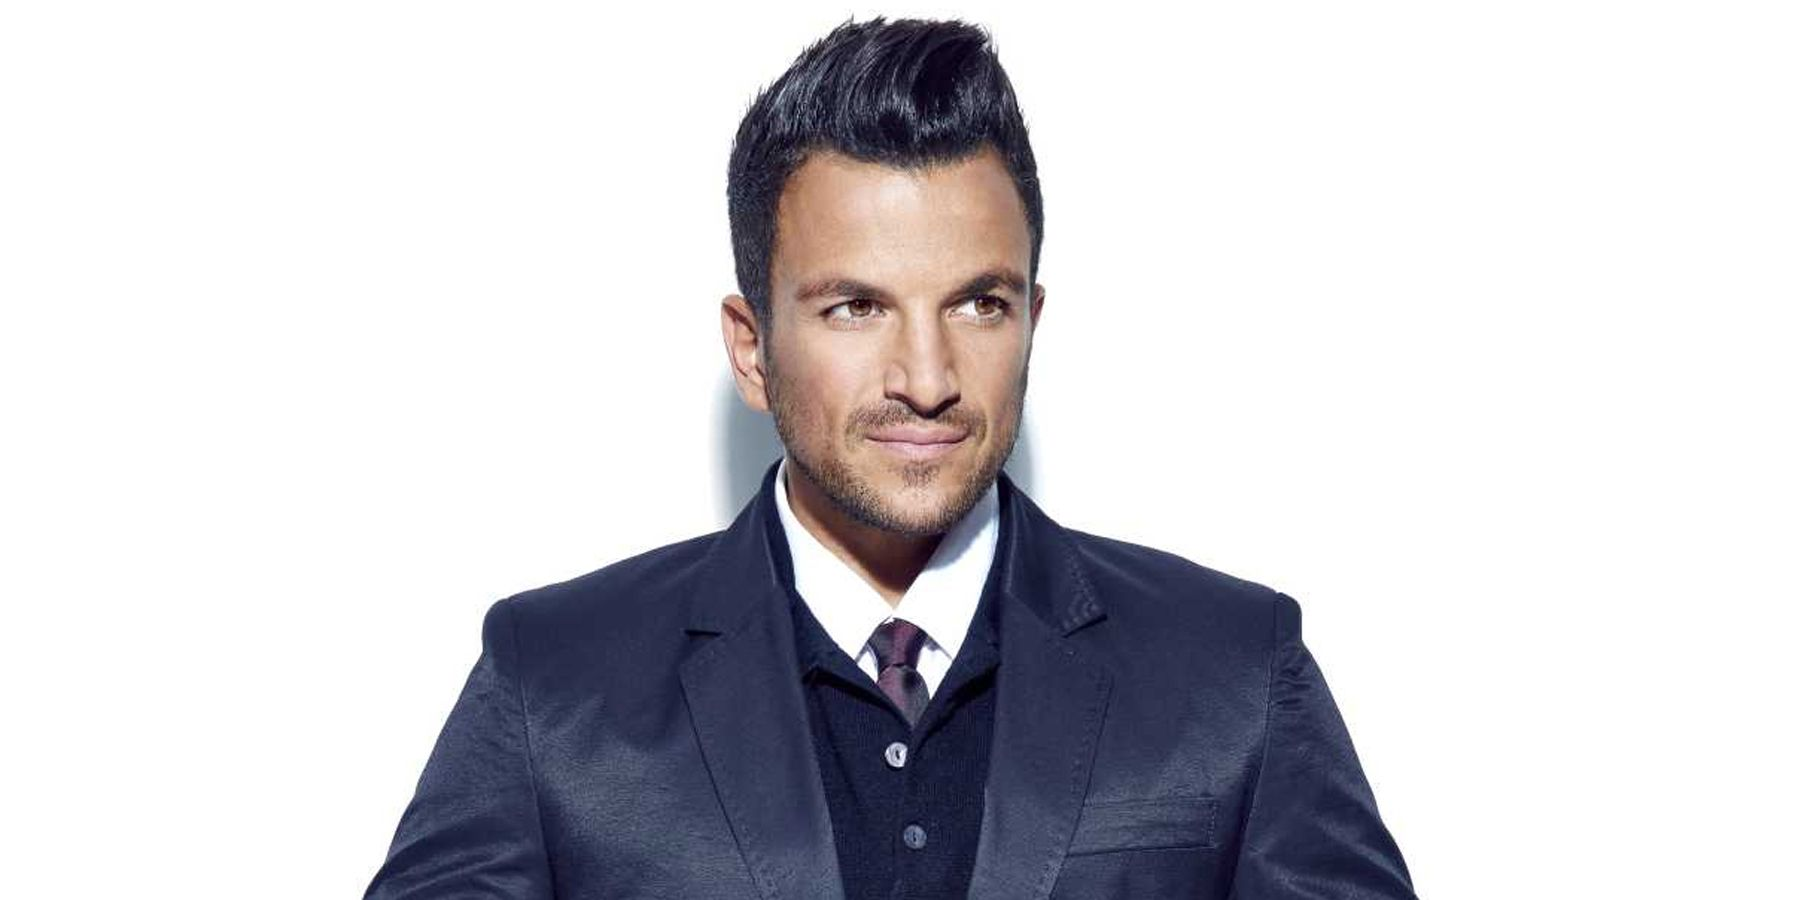 Peter Andre Calls for Cancellation of All Reality TV Shows Over Mental Health Concerns